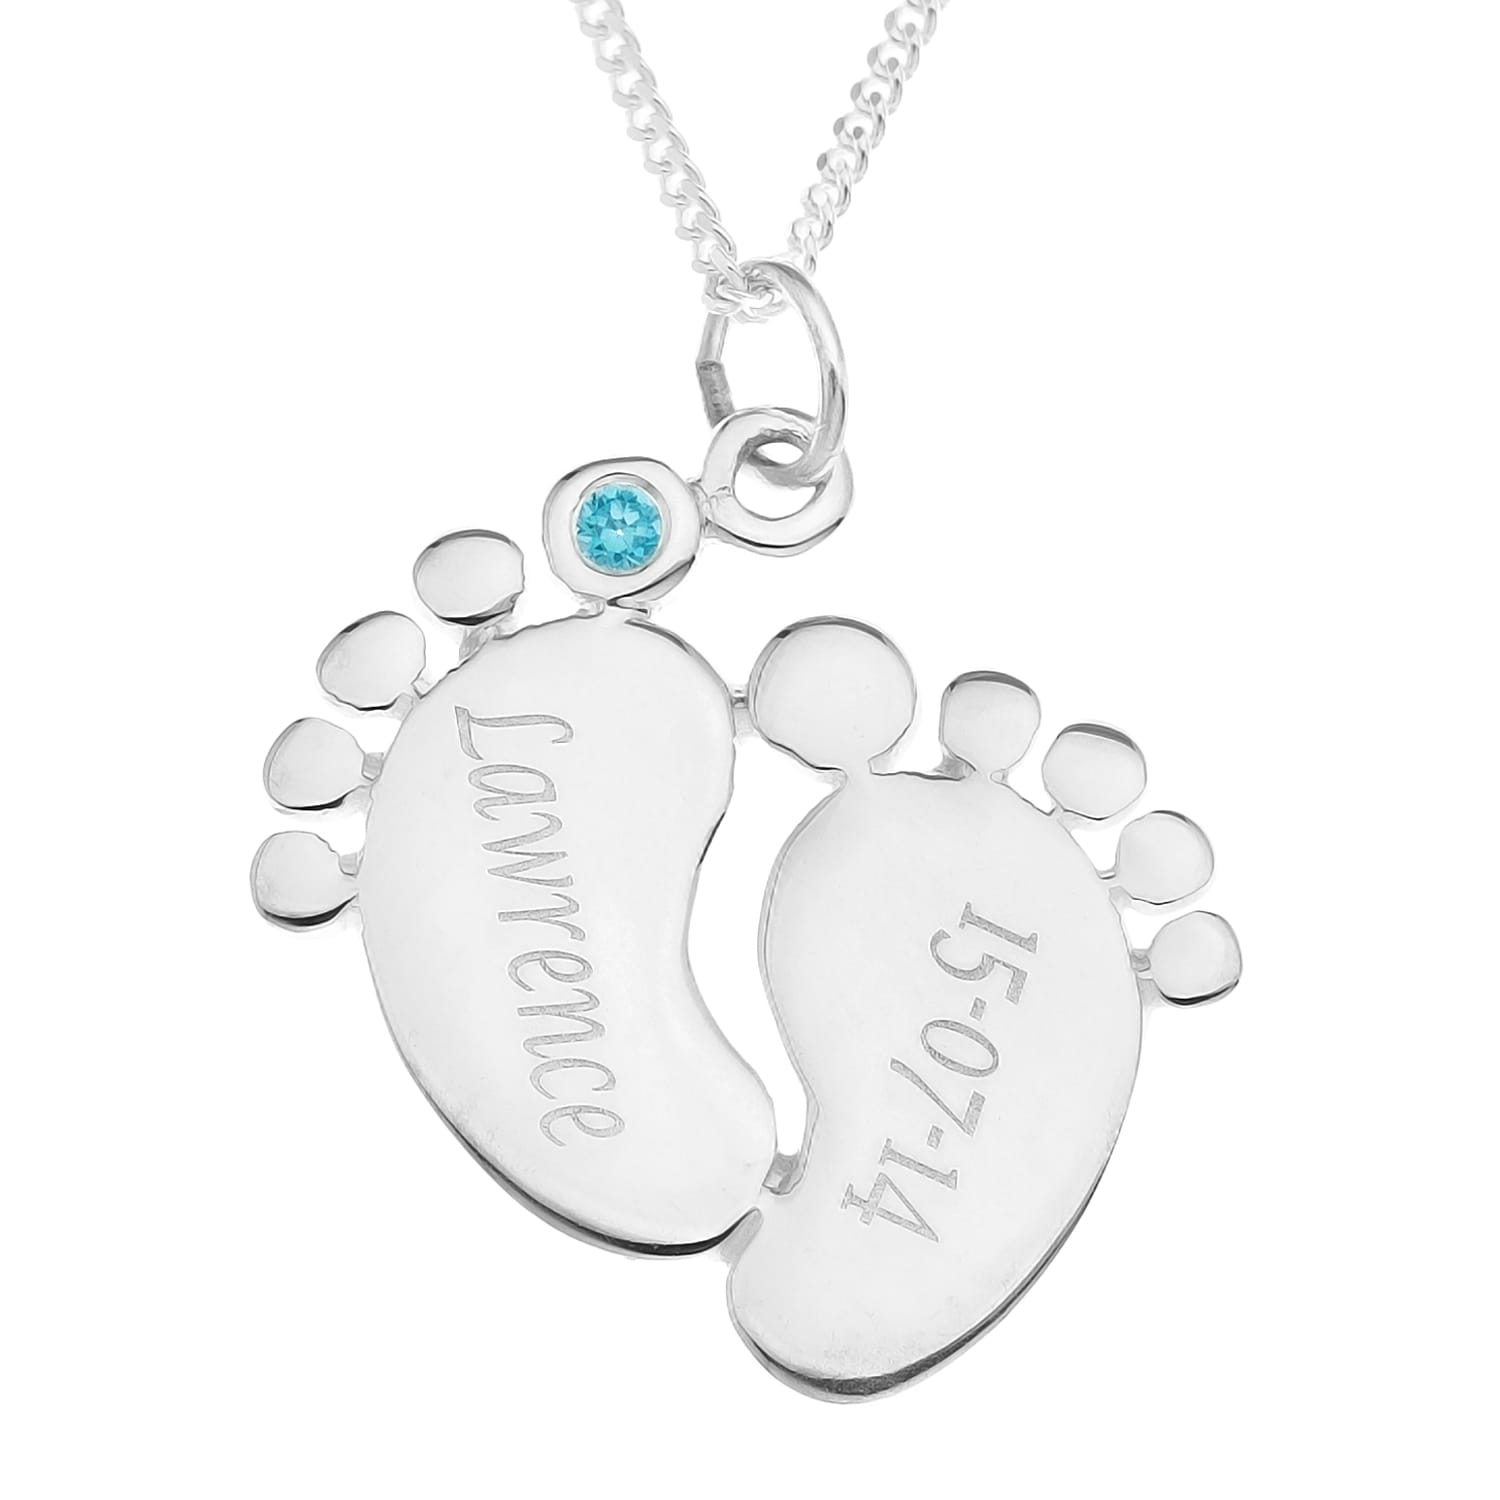 Personalised Gifts Sterling Silver Baby Gift Pendant With Name, Birthday and Birthstone